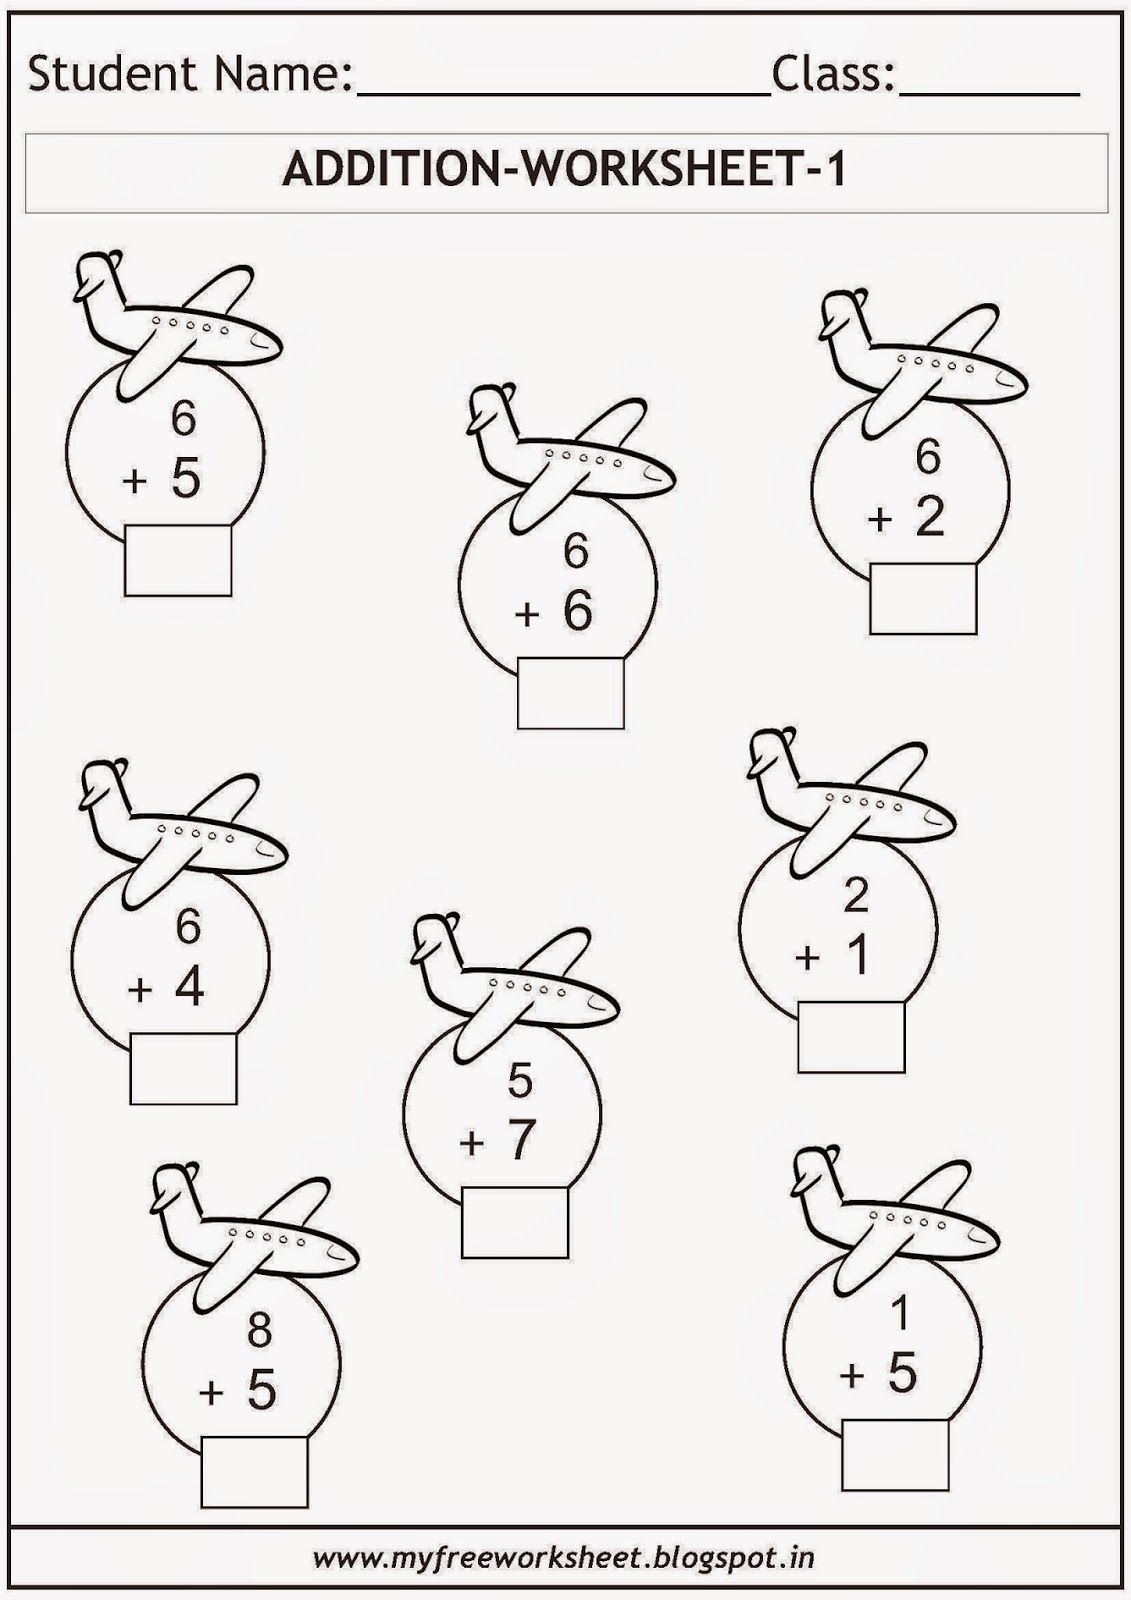 Free printable math worksheets for grade 1 kids. Includes